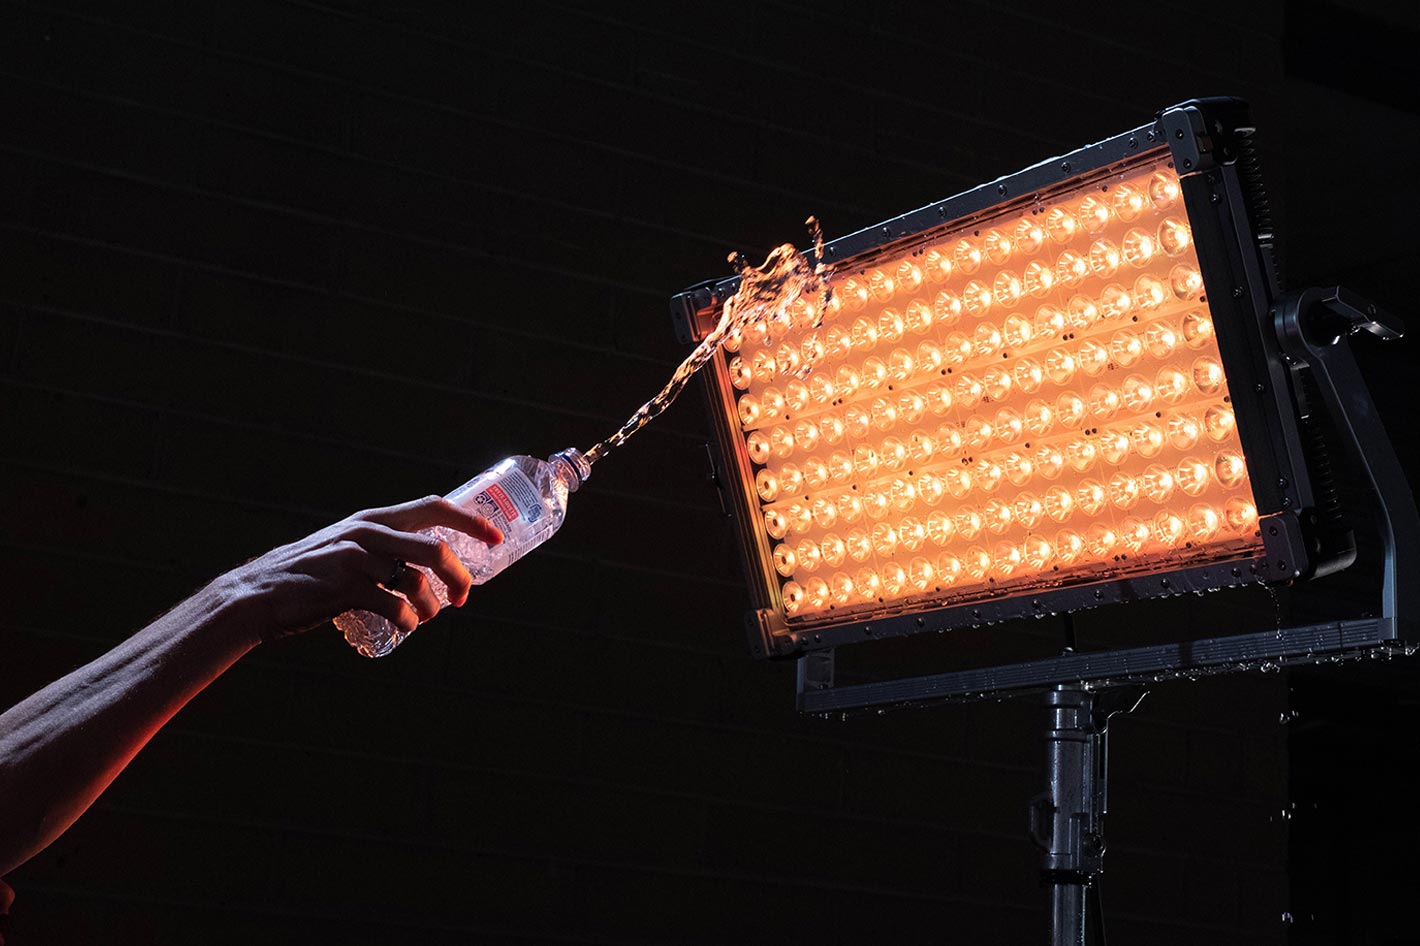 Creamsource Vortex8: a water-resistant 650W high power LED